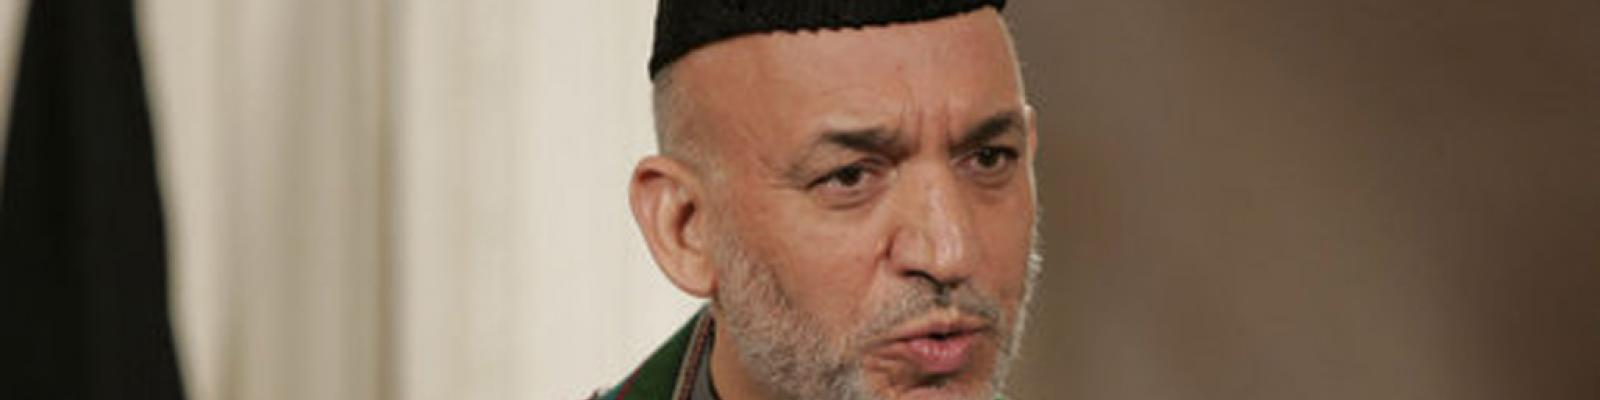 Sehgal on Karzai's Visit to Pakistan